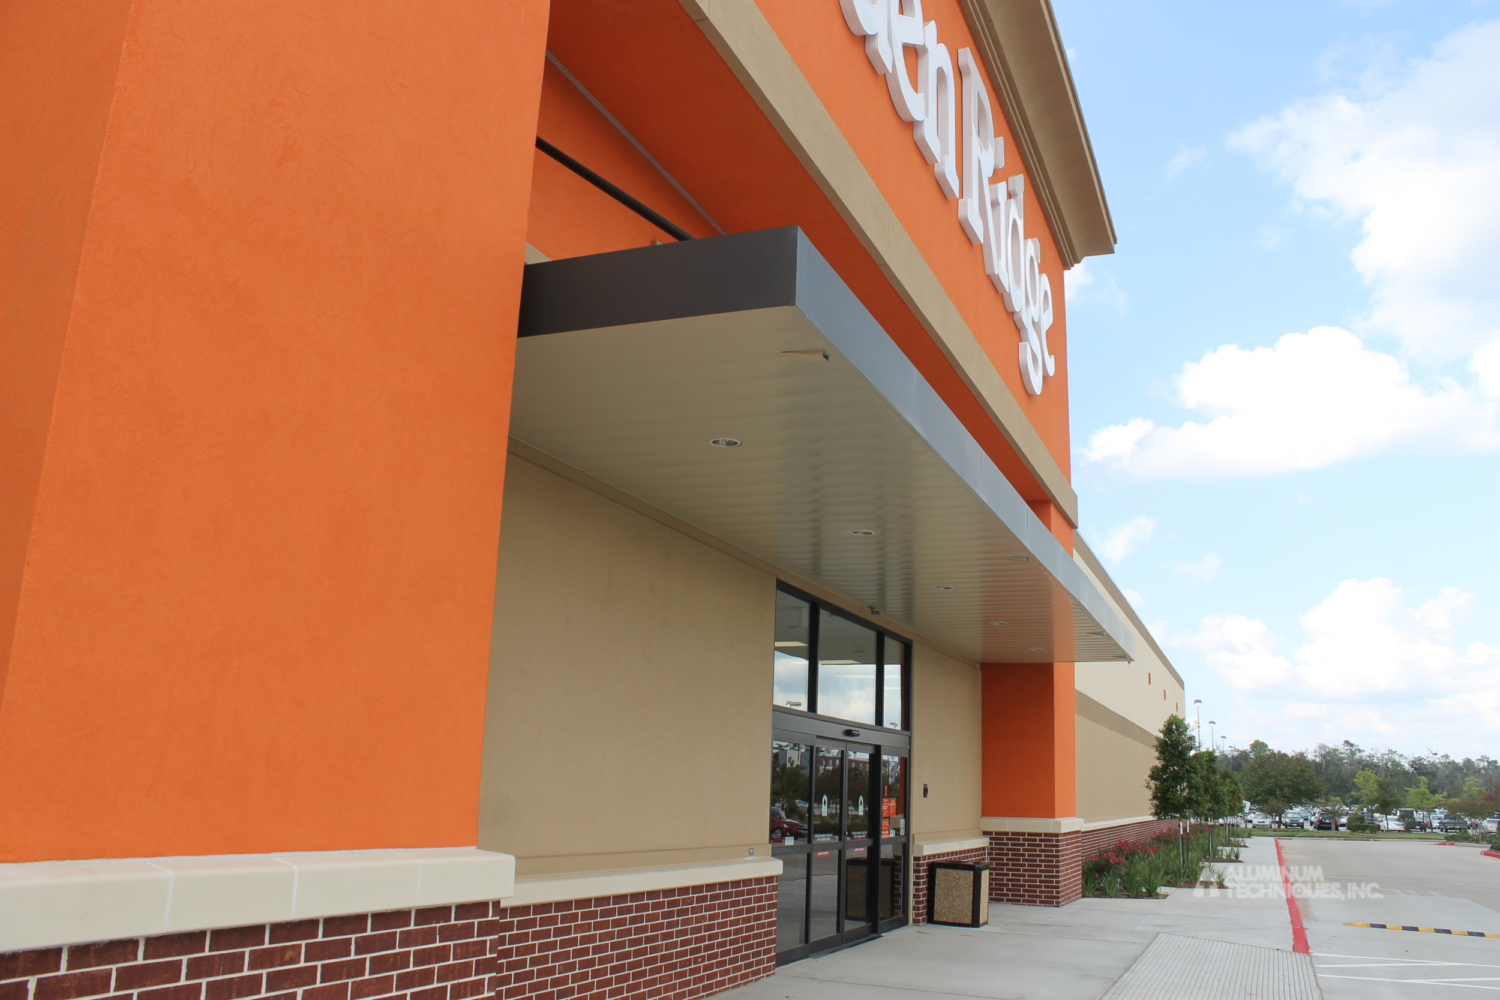 Showing a canopy protecting the entryway to a big box retail store.